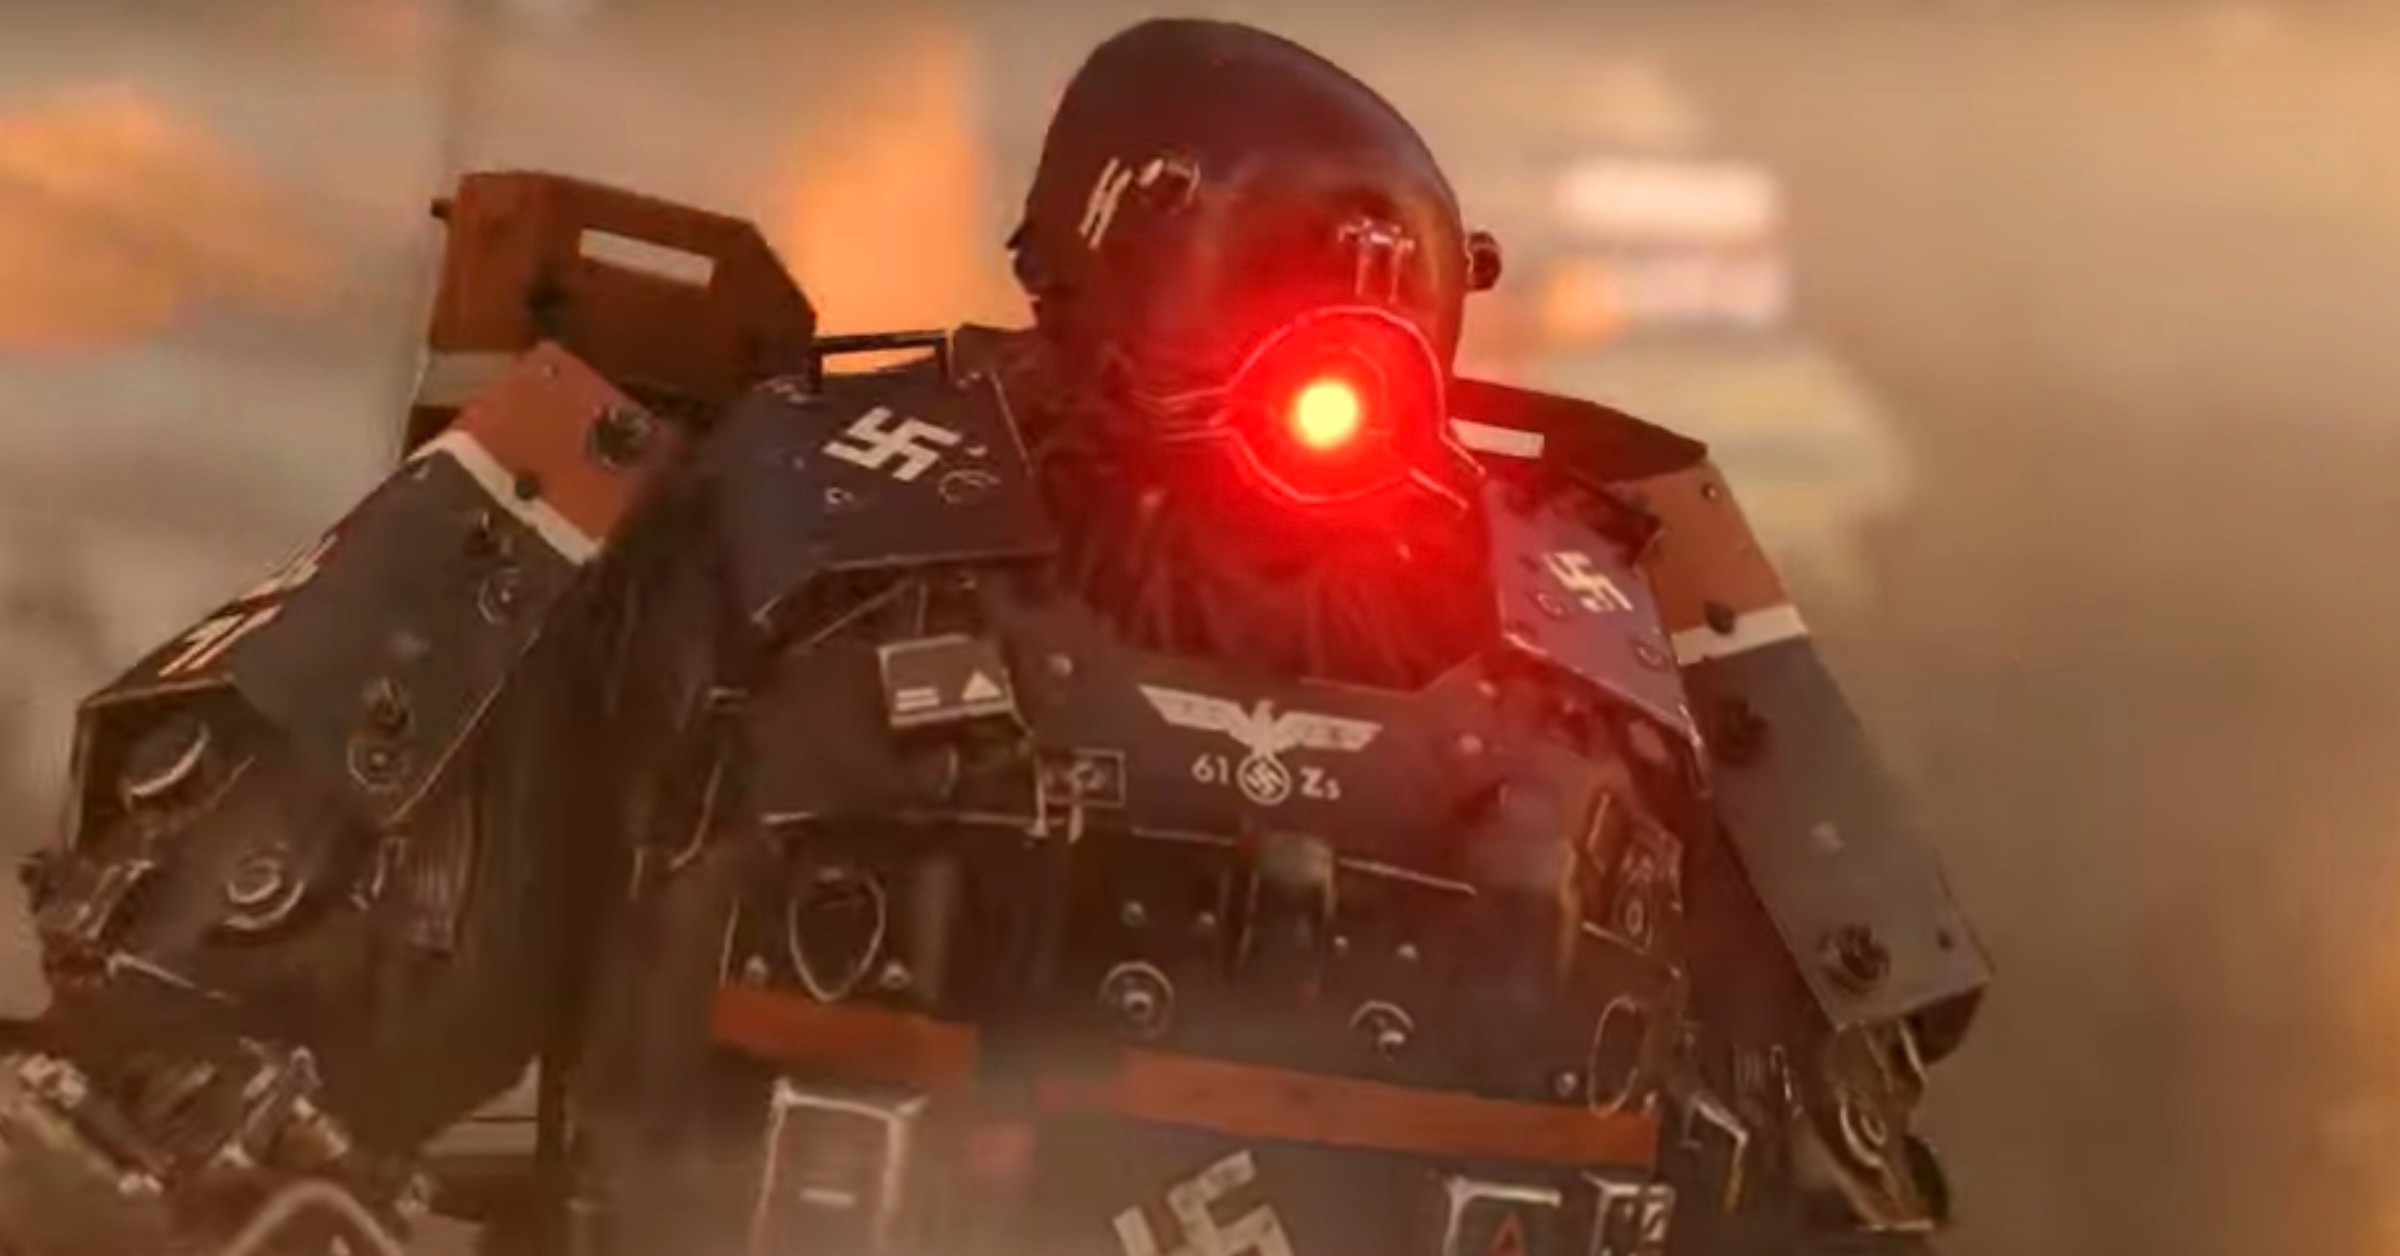 CARPENTER BRUT Rocks The HELL Out of the New WOLFENSTEIN